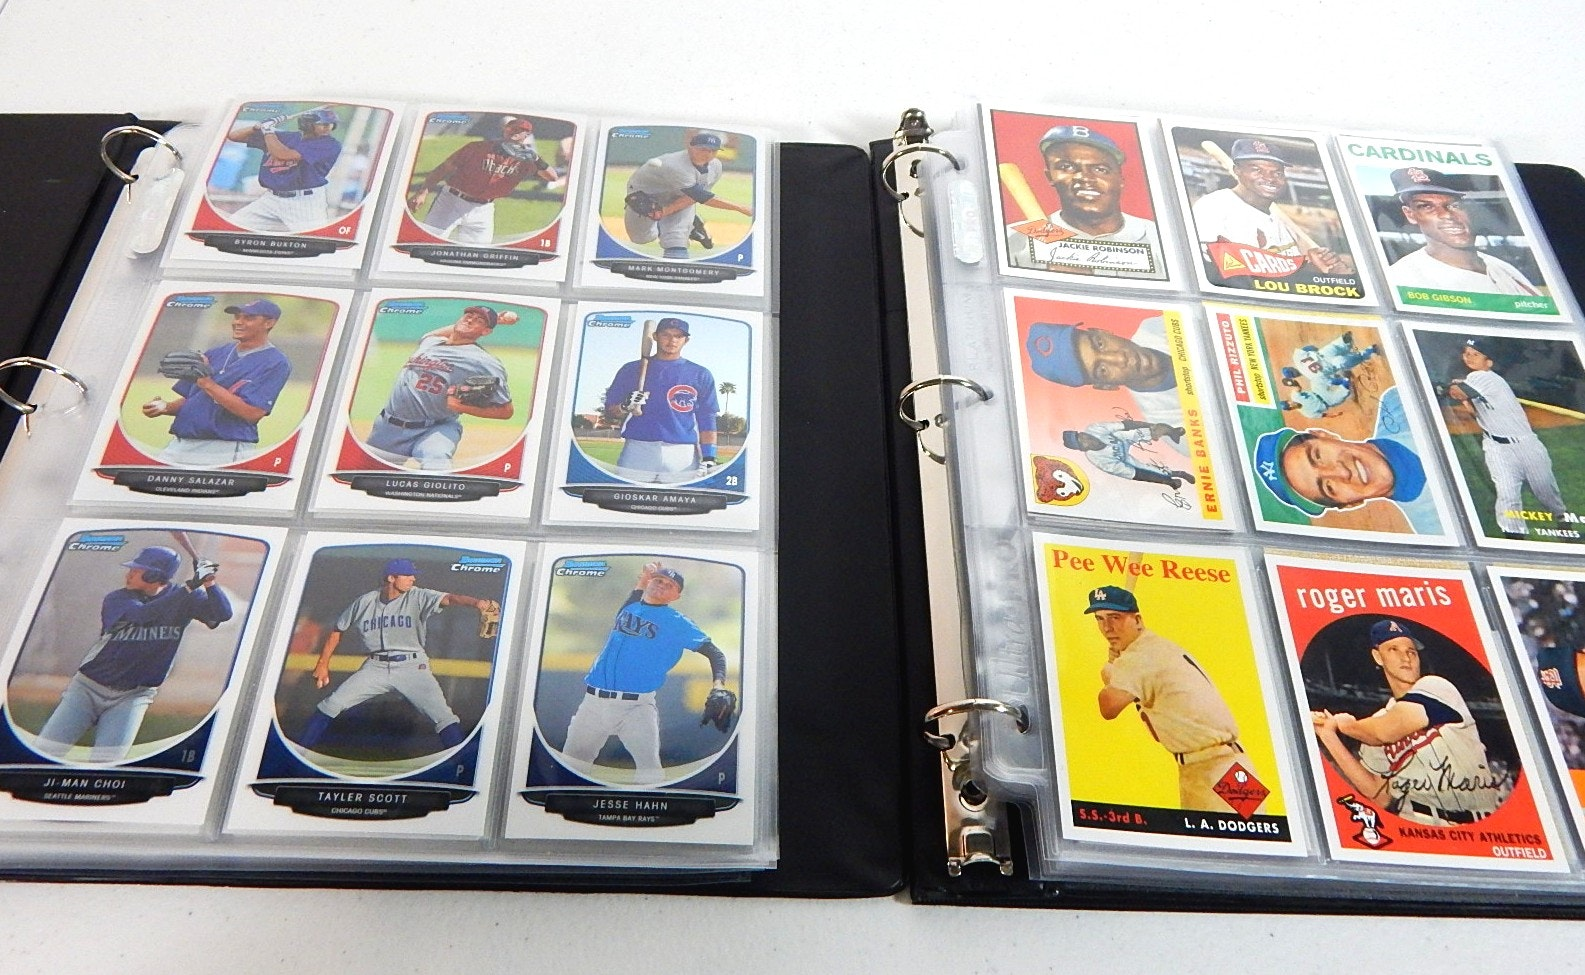 Baseball Cards in Two Albums with 2013 Bowman and 2011 Topps